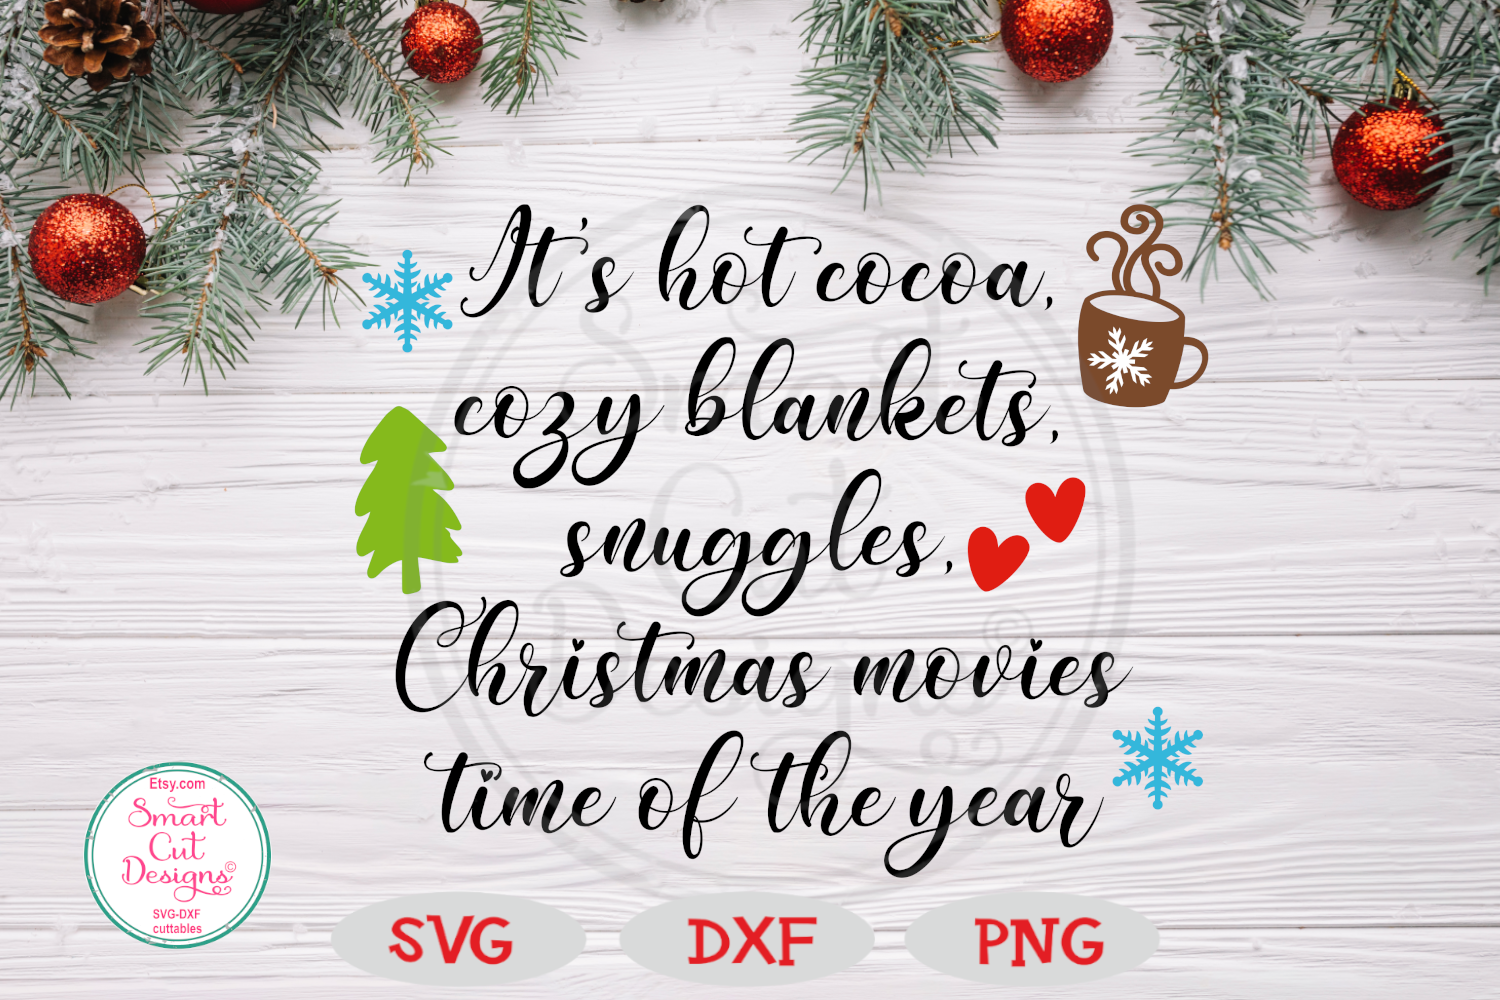 It's Hot Cocoa, Cozy Blankets SVG, Christmas, Farmhouse SVG example image 4